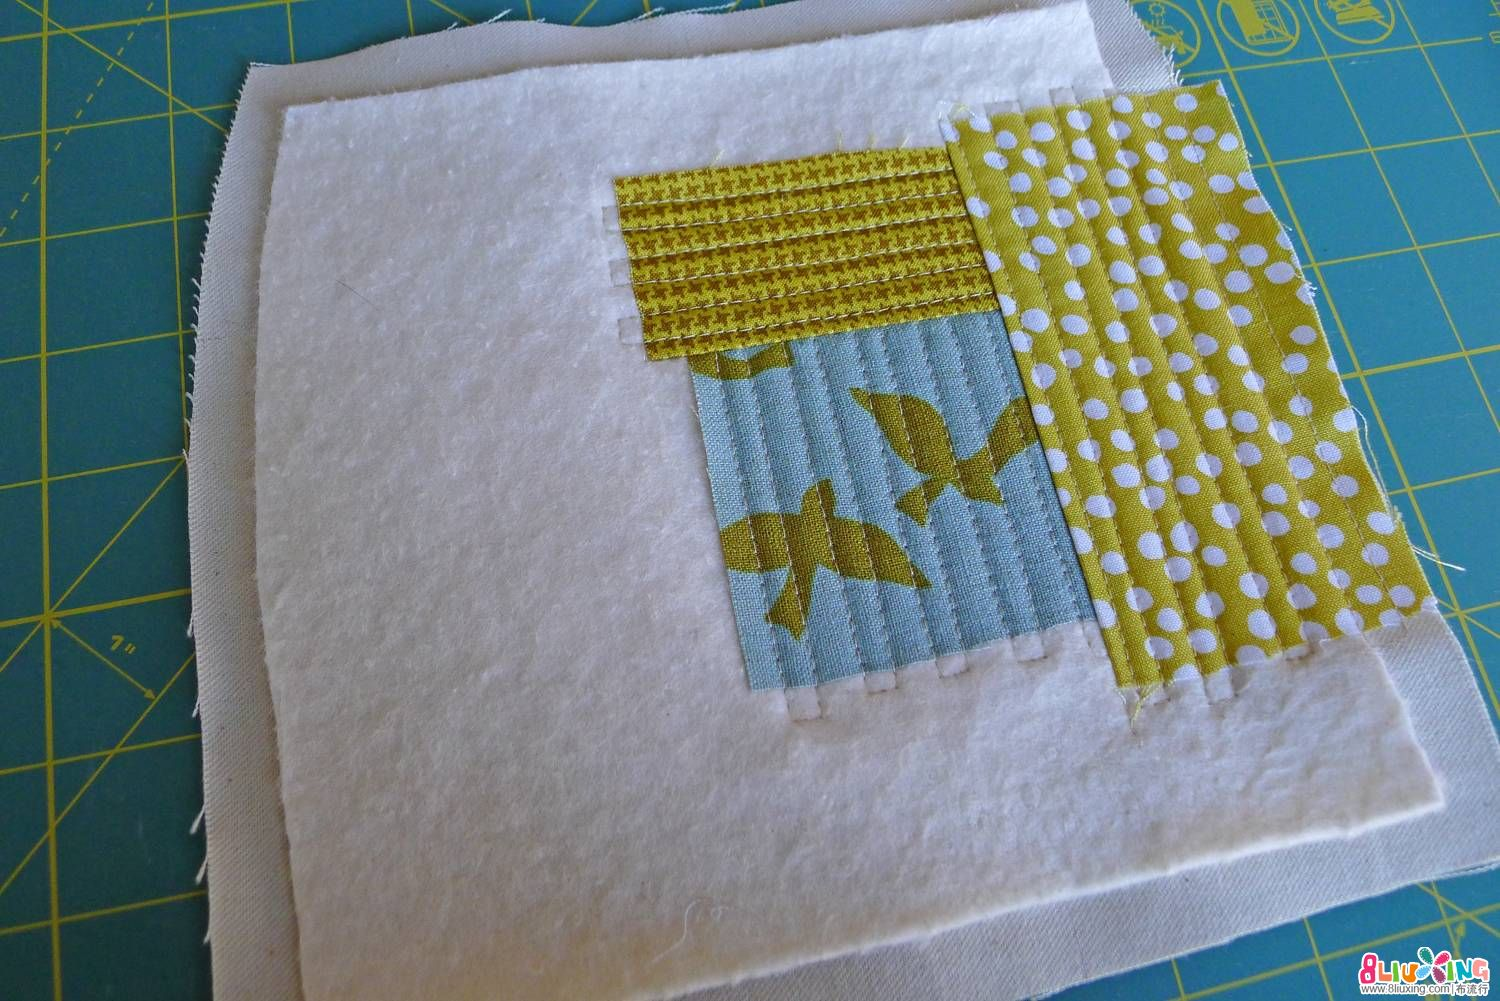 quilt_as_you_go (4).jpg